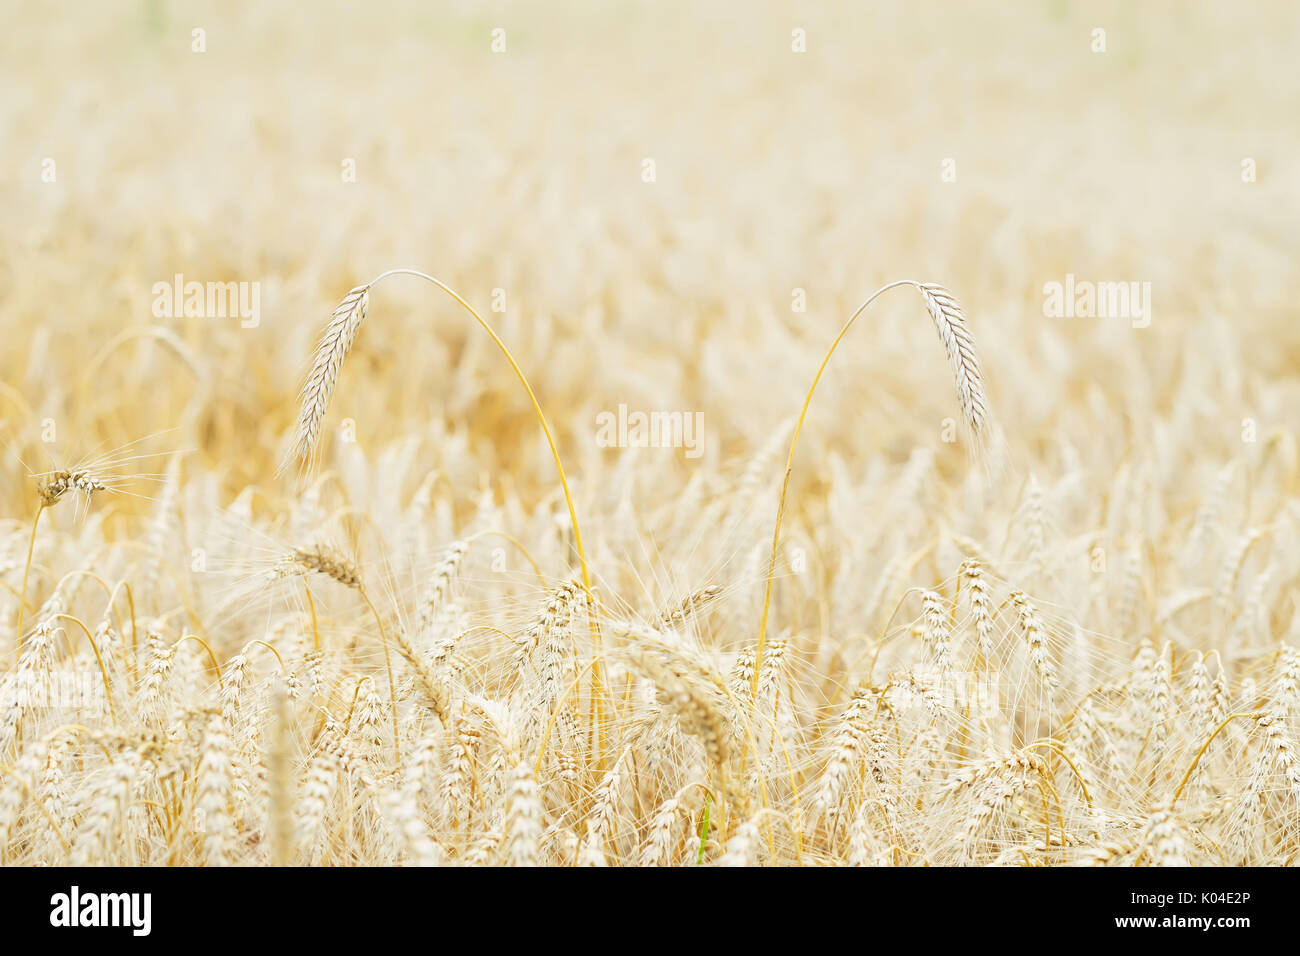 Wheat field, ears of cereals in the hot summer noon, selective focus - Stock Image